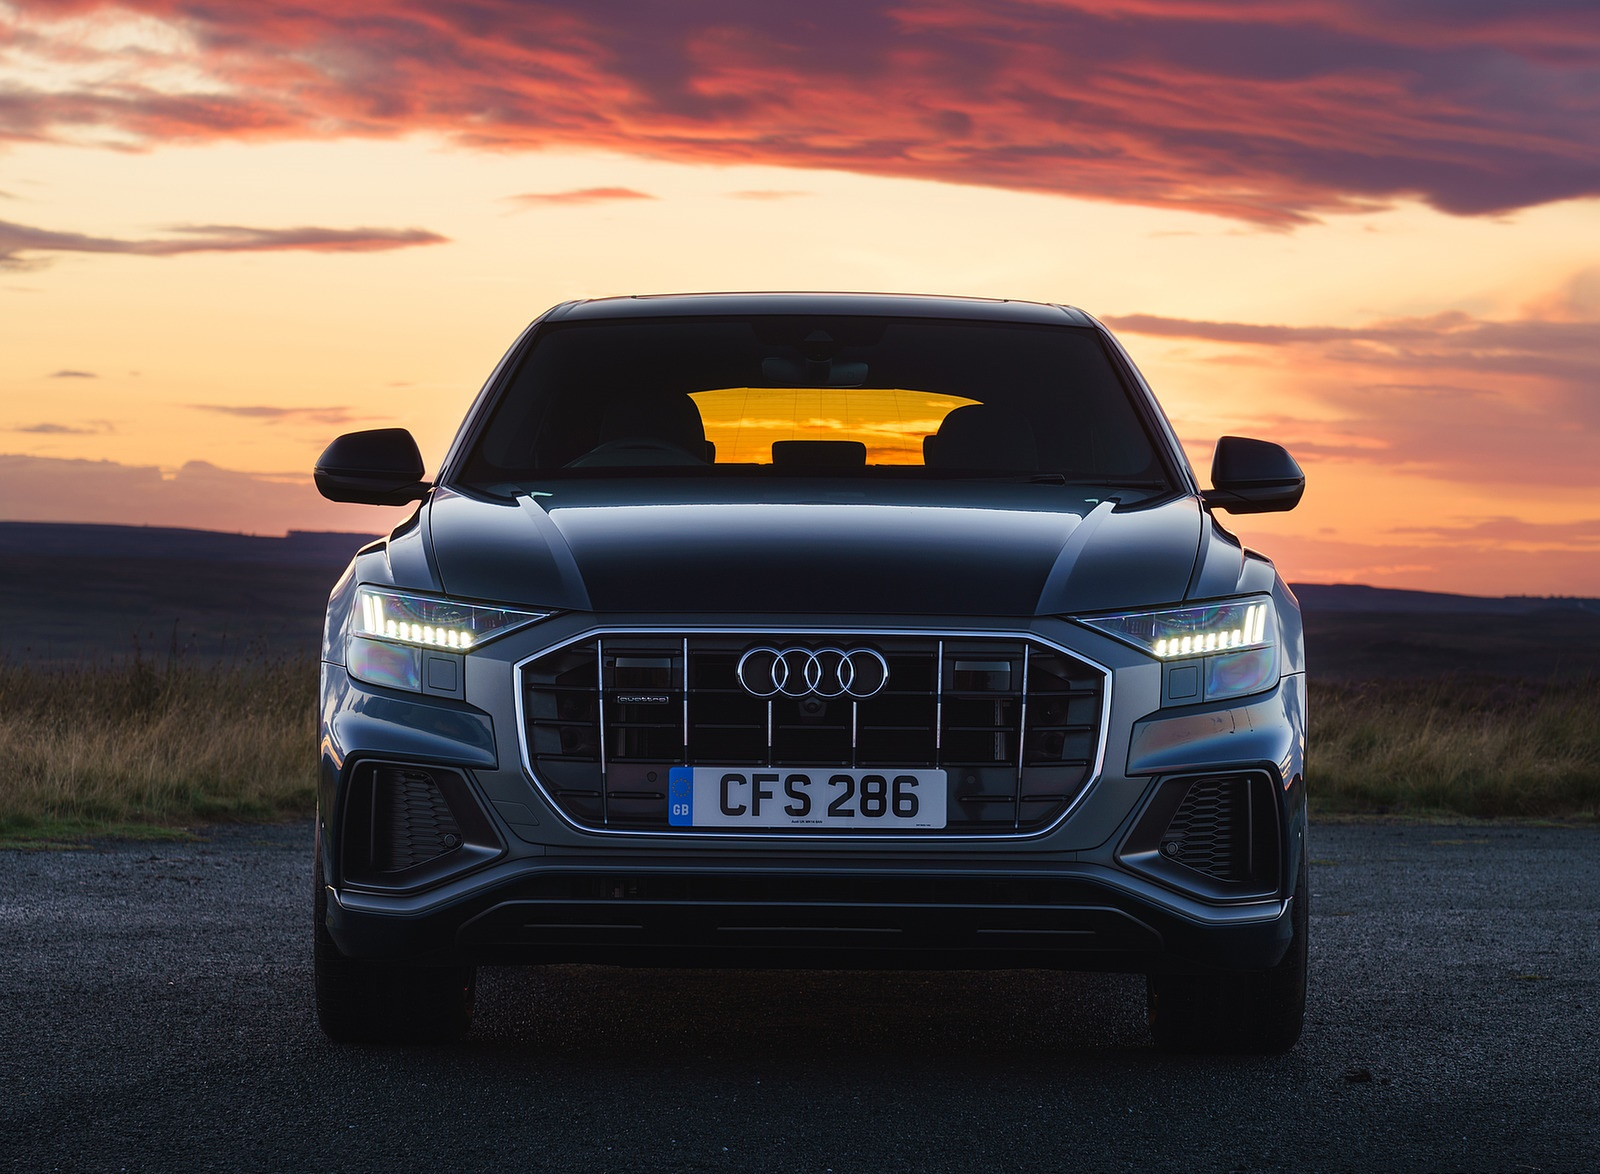 2019 Audi Q8 S Line 50 TDI Quattro (UK-Spec) Front Wallpaper (12)